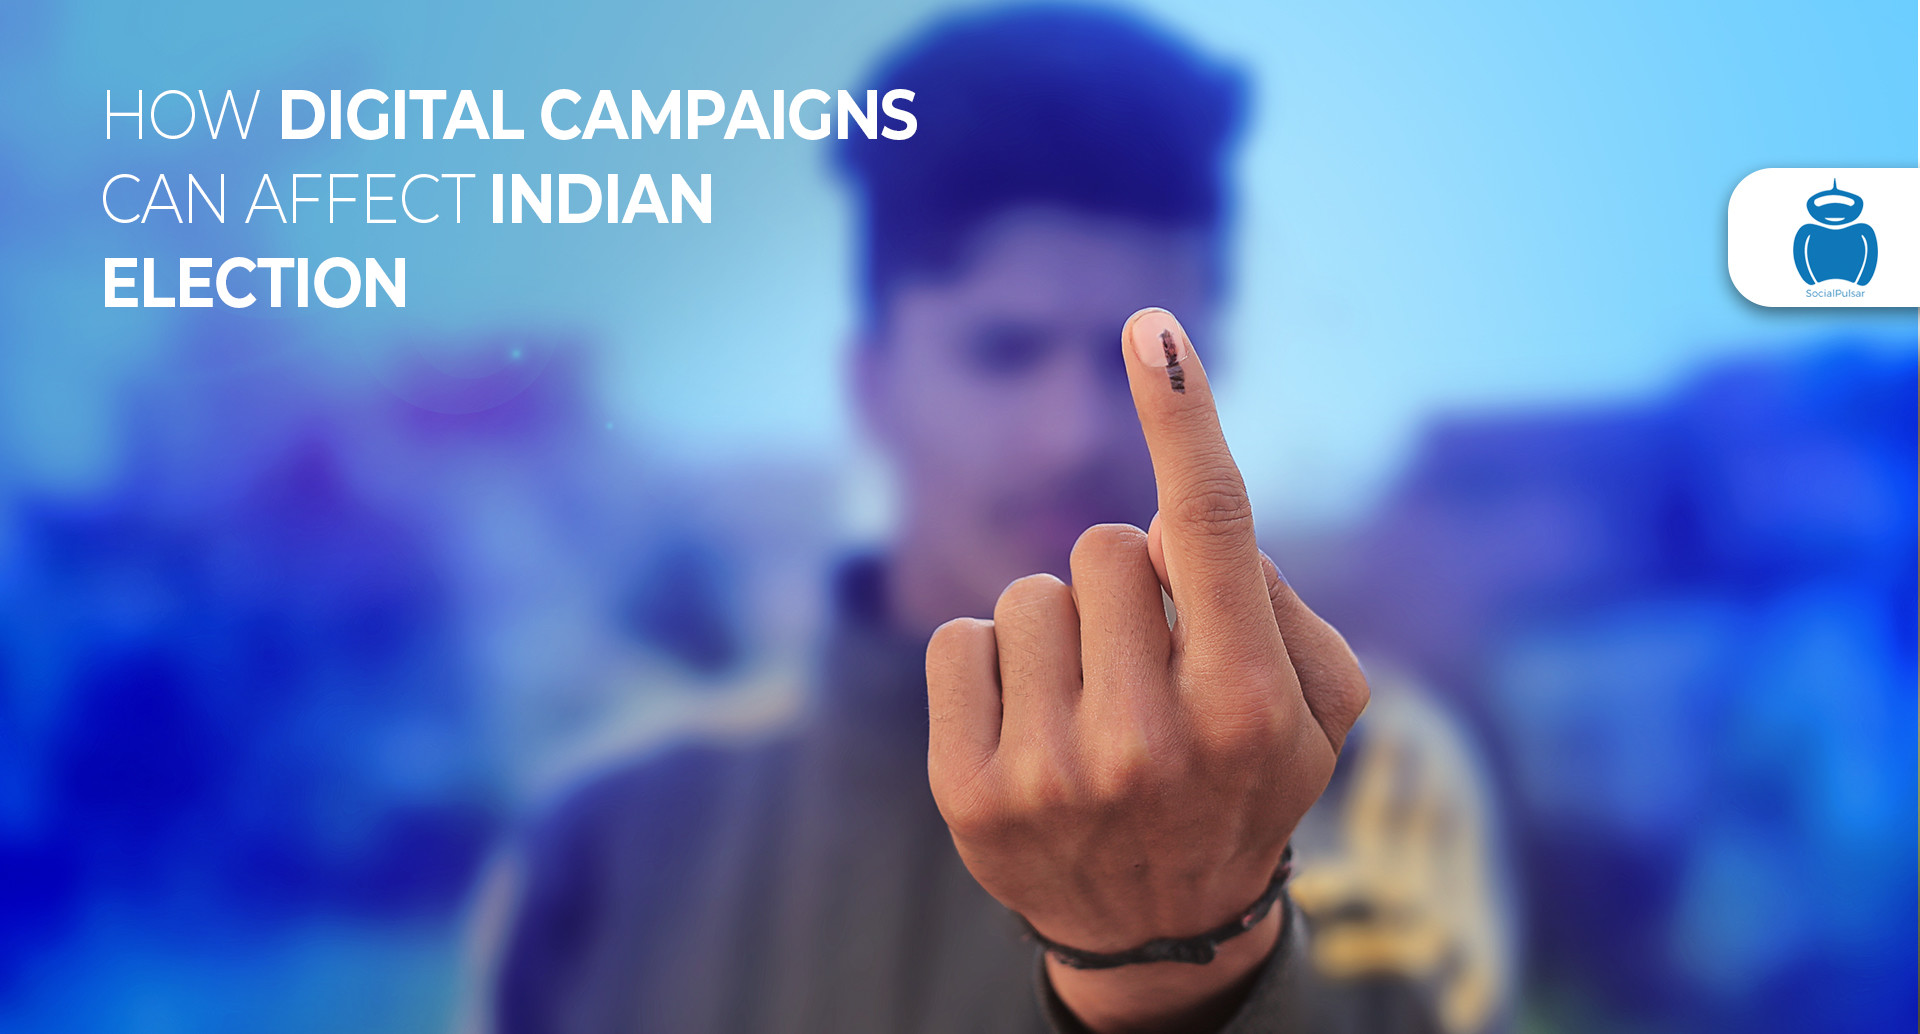 How Digital Campaigns Can Affect Indian Election